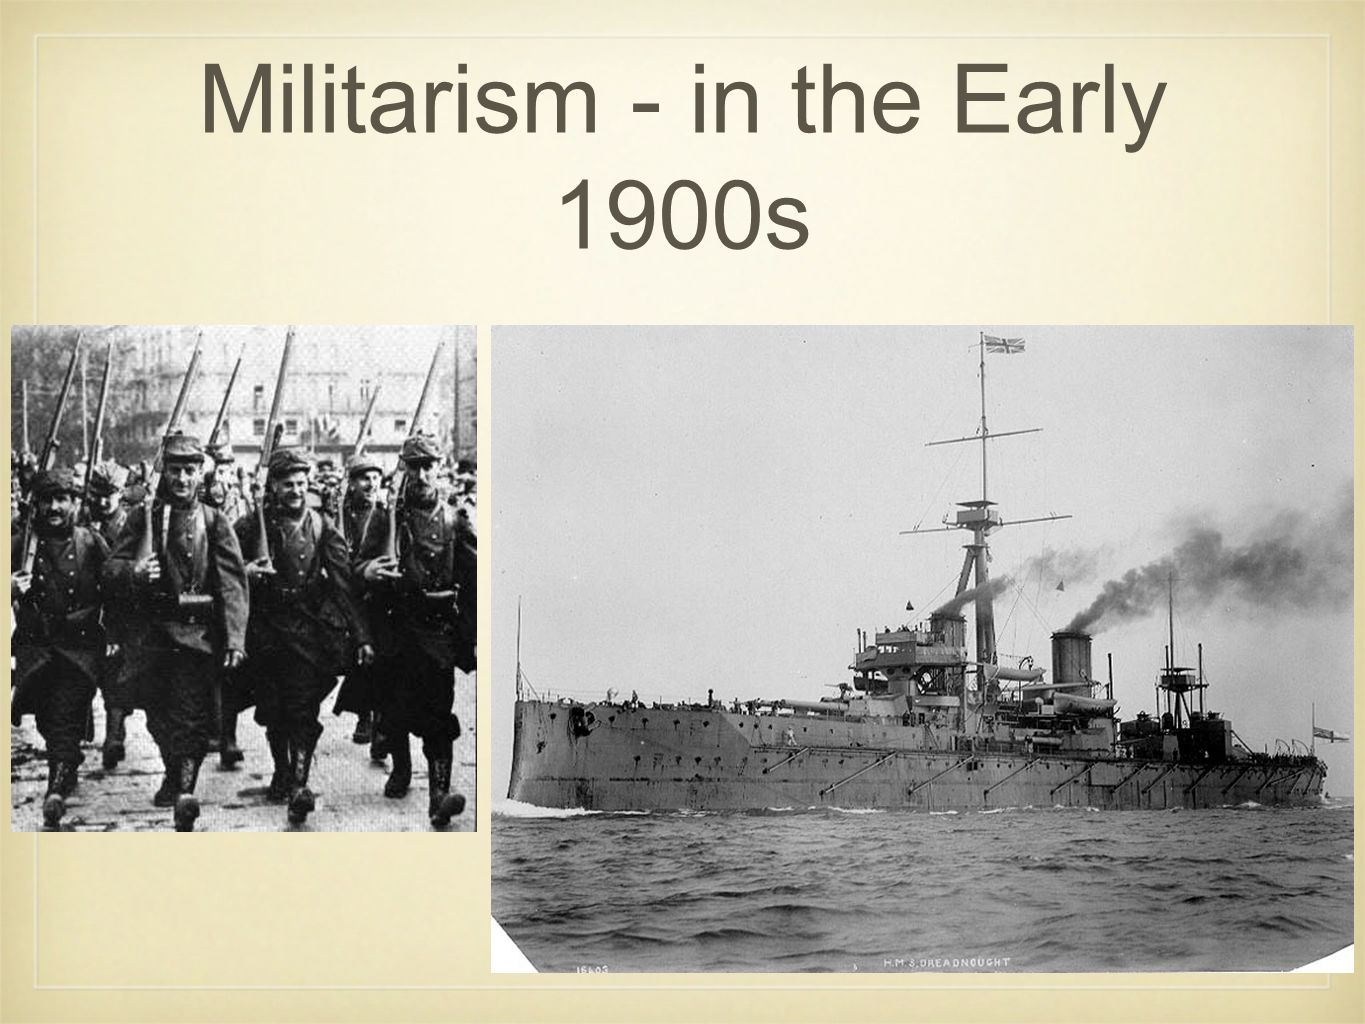 Militarism Break it down: Military - means army Ism - the act of doing something Militarism - the act of building up an army.